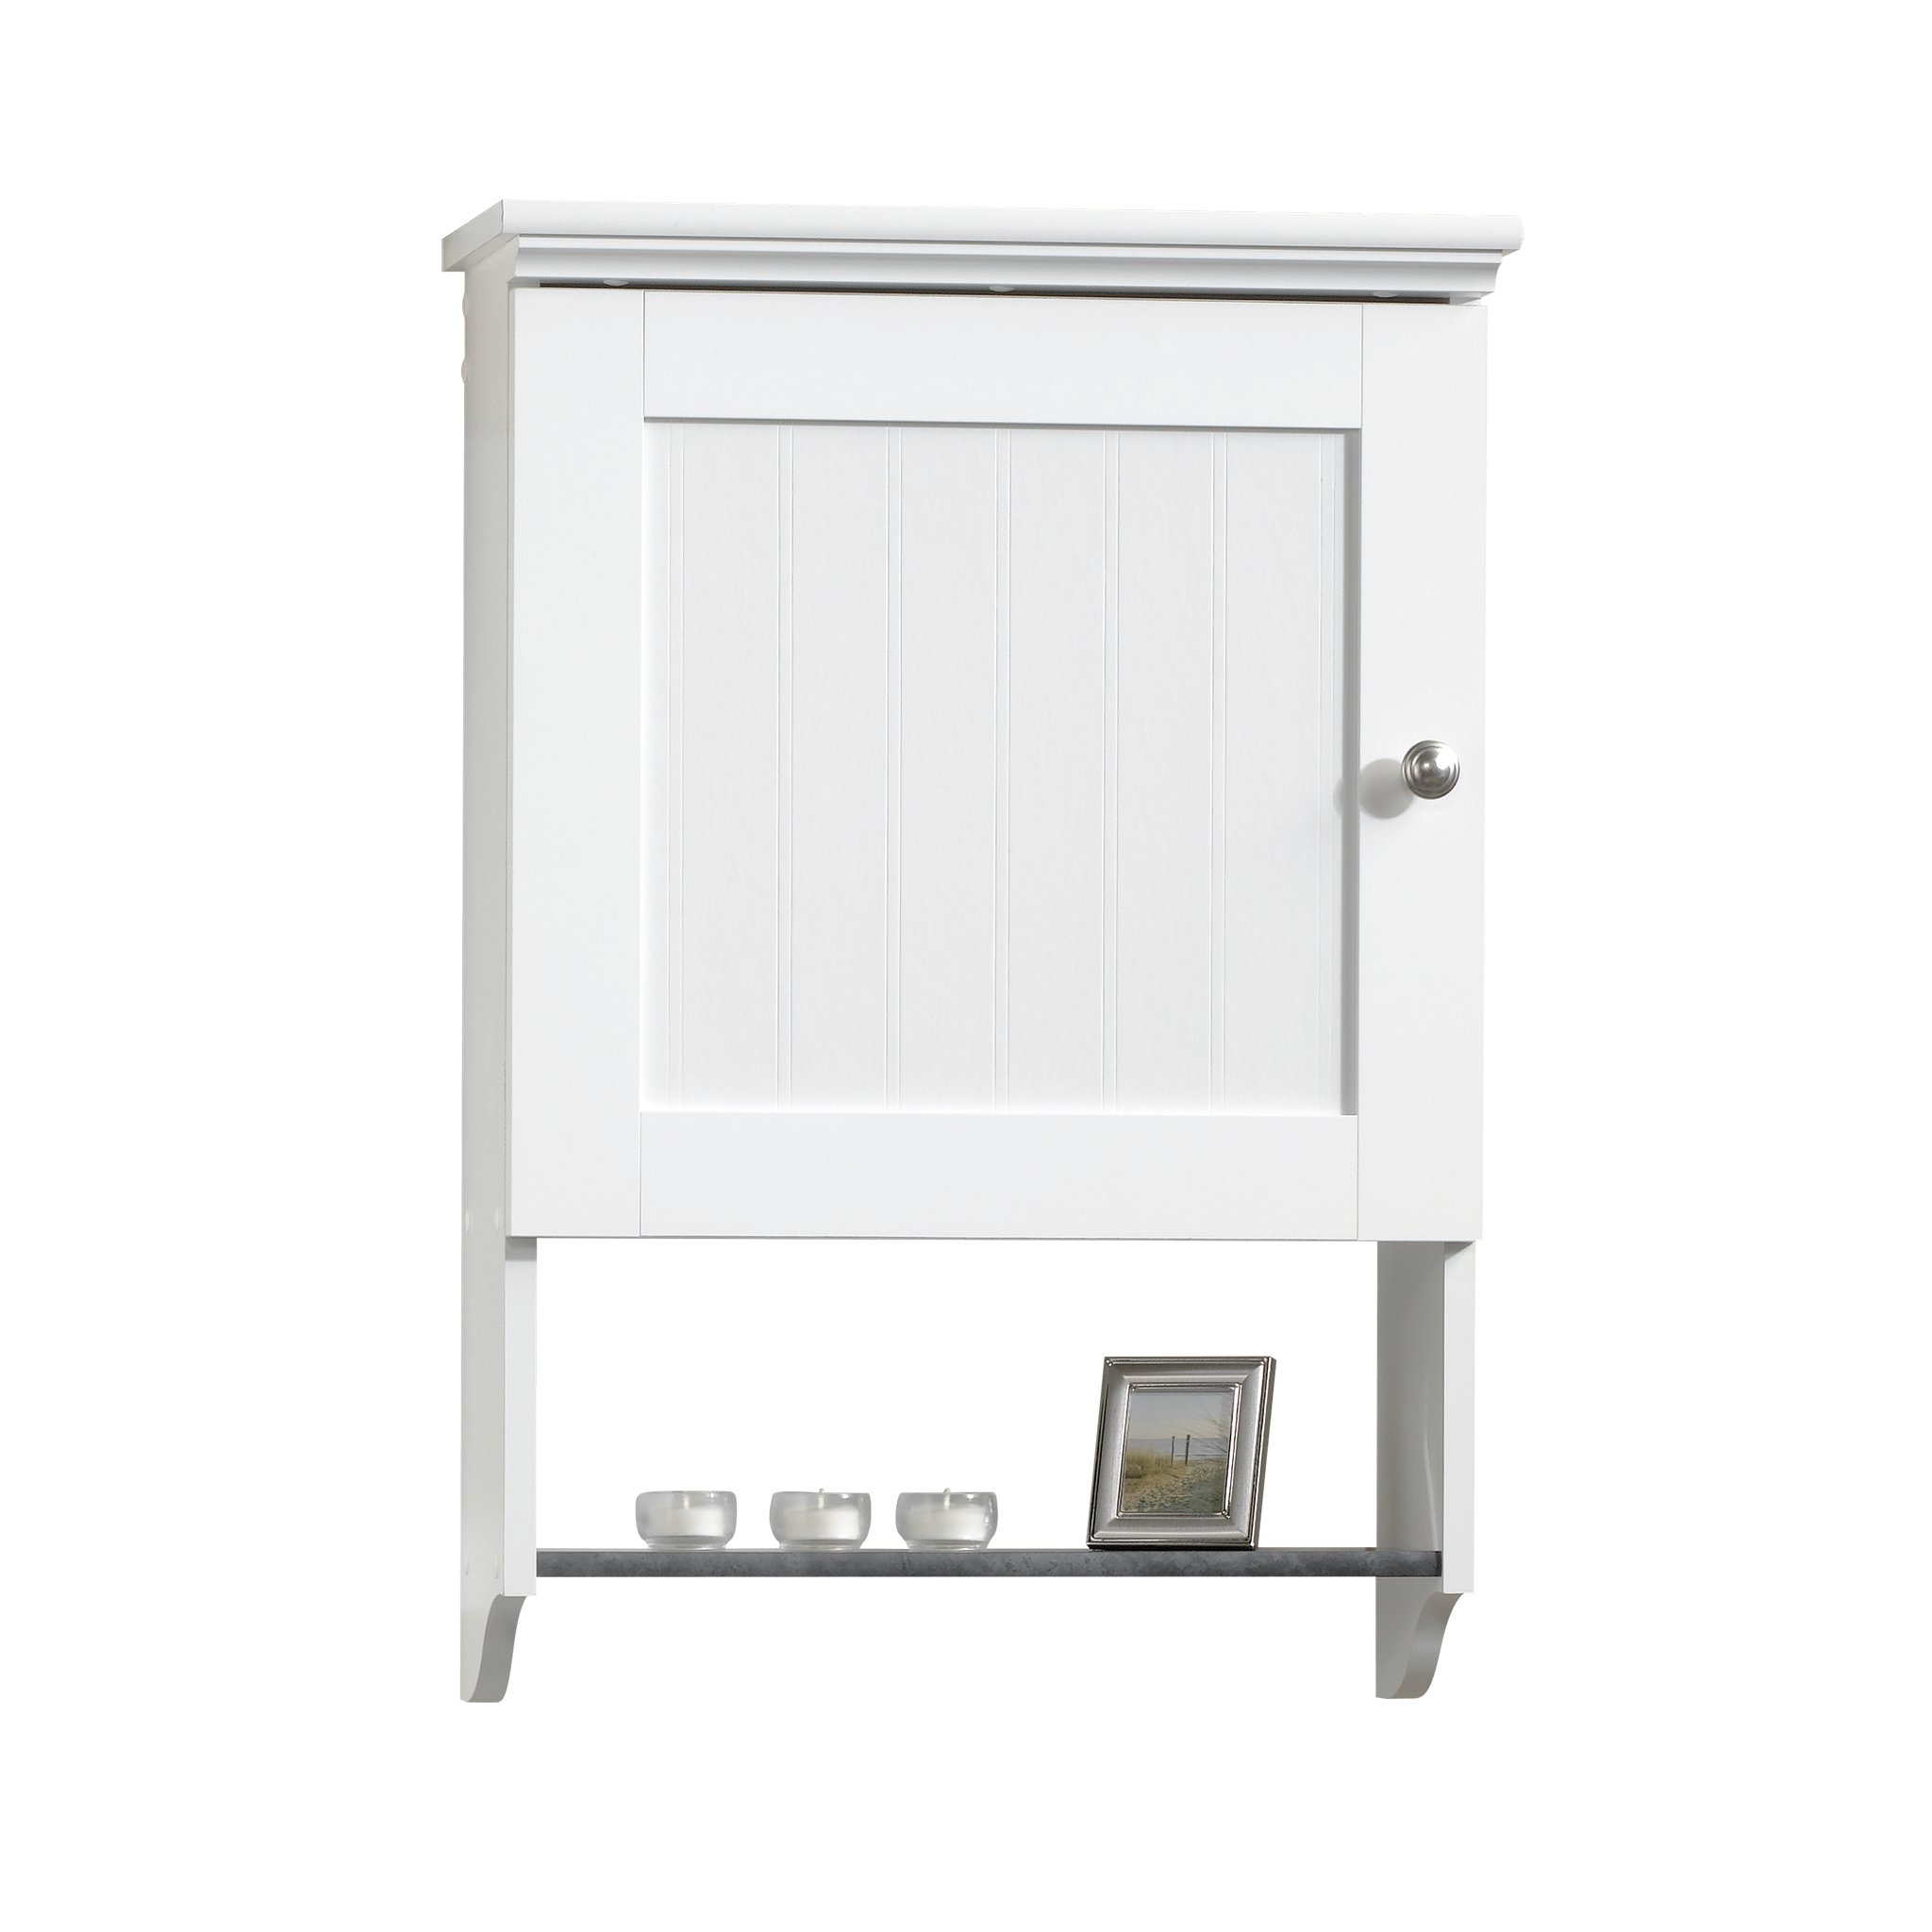 Sauder Wall Cabinet, Soft White Finish